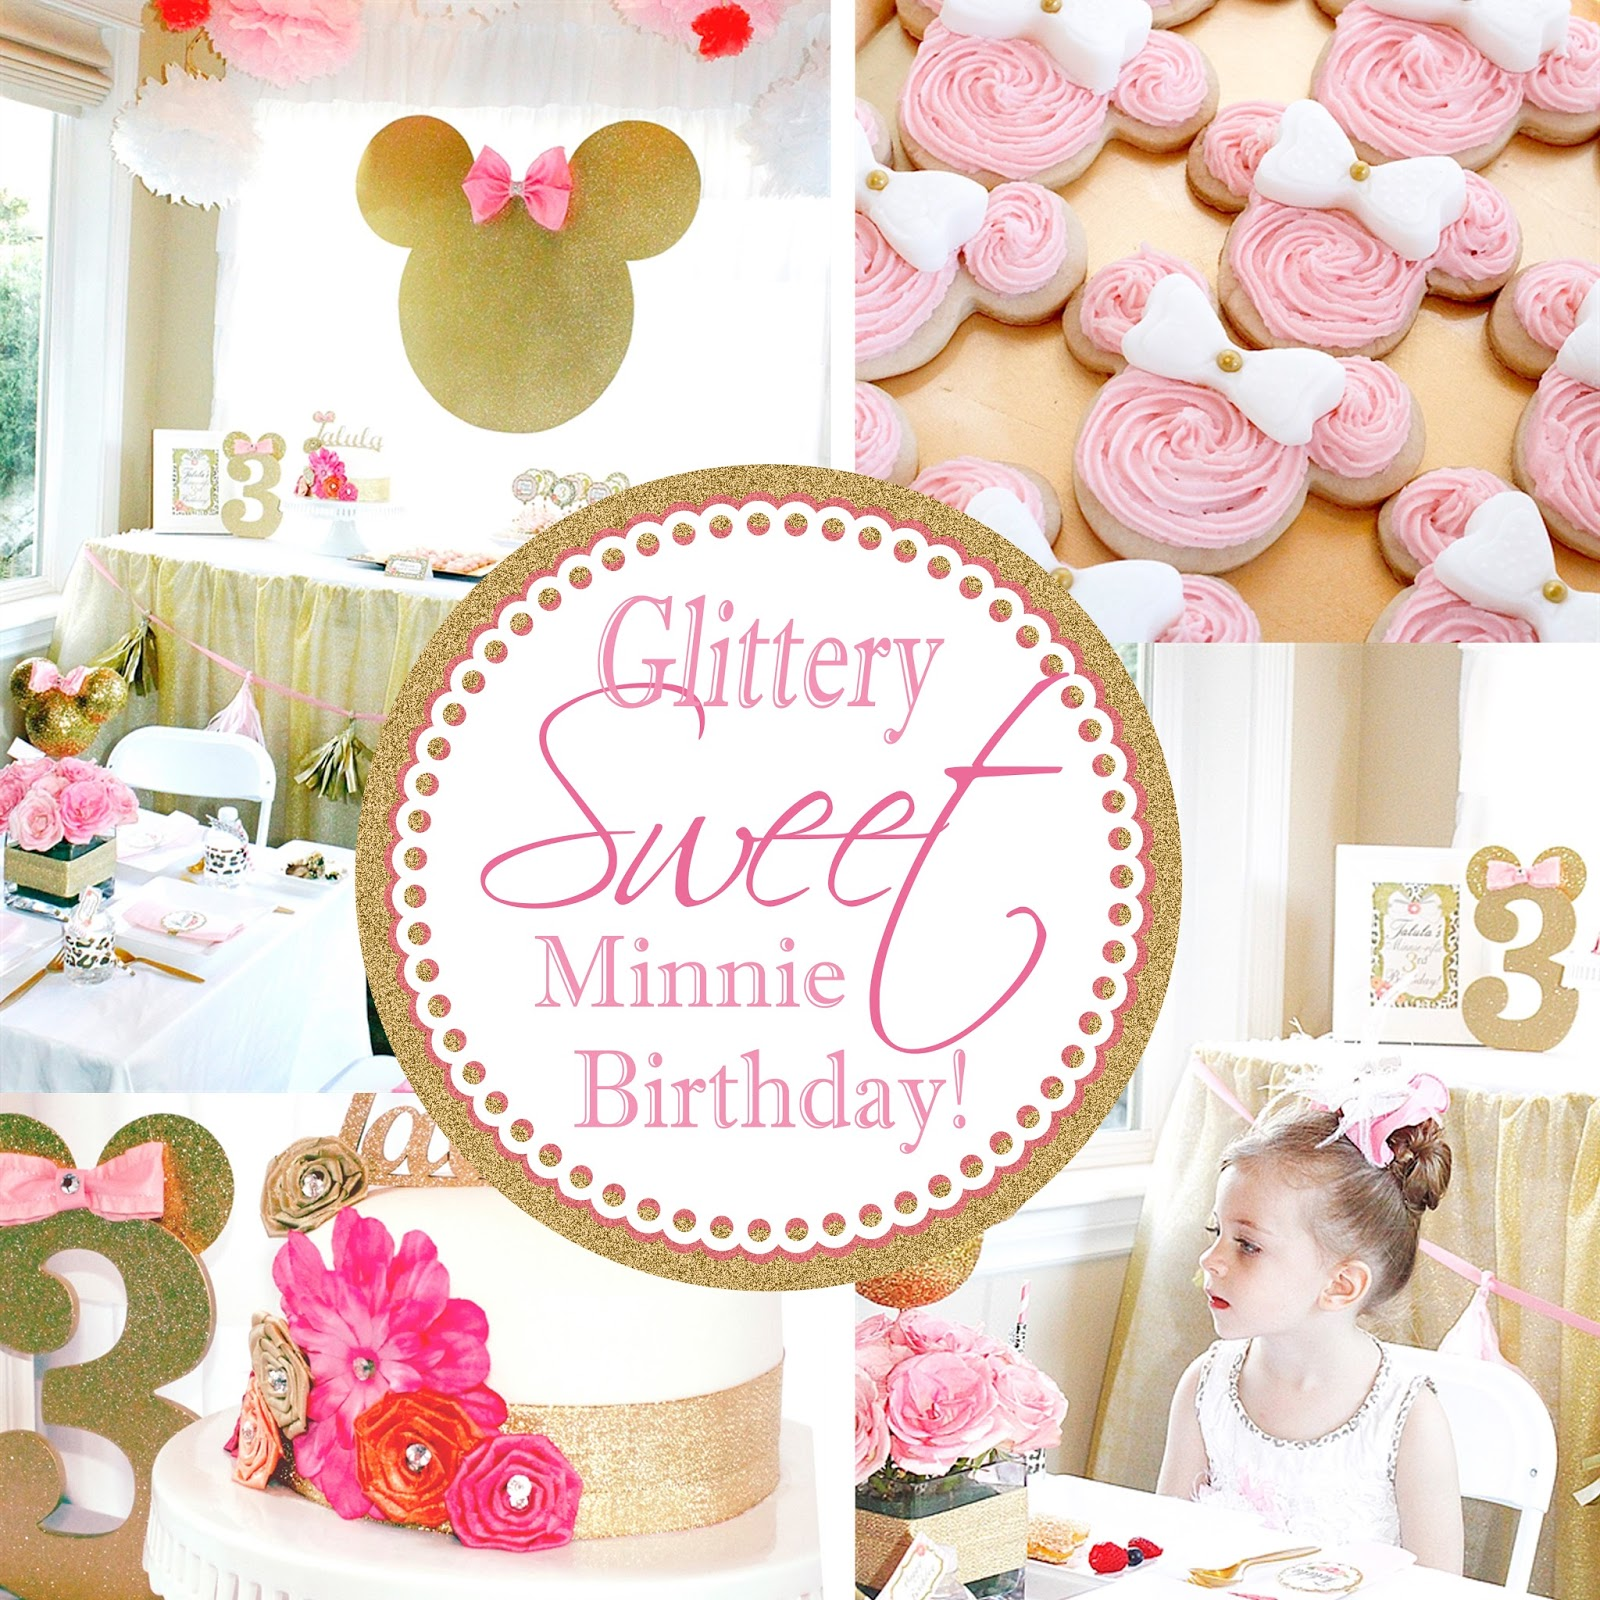 Minnie Mouse First Birthday Party Via Little Wish Parties: A Lovely Design: Glittery Sweet Minnie Birthday